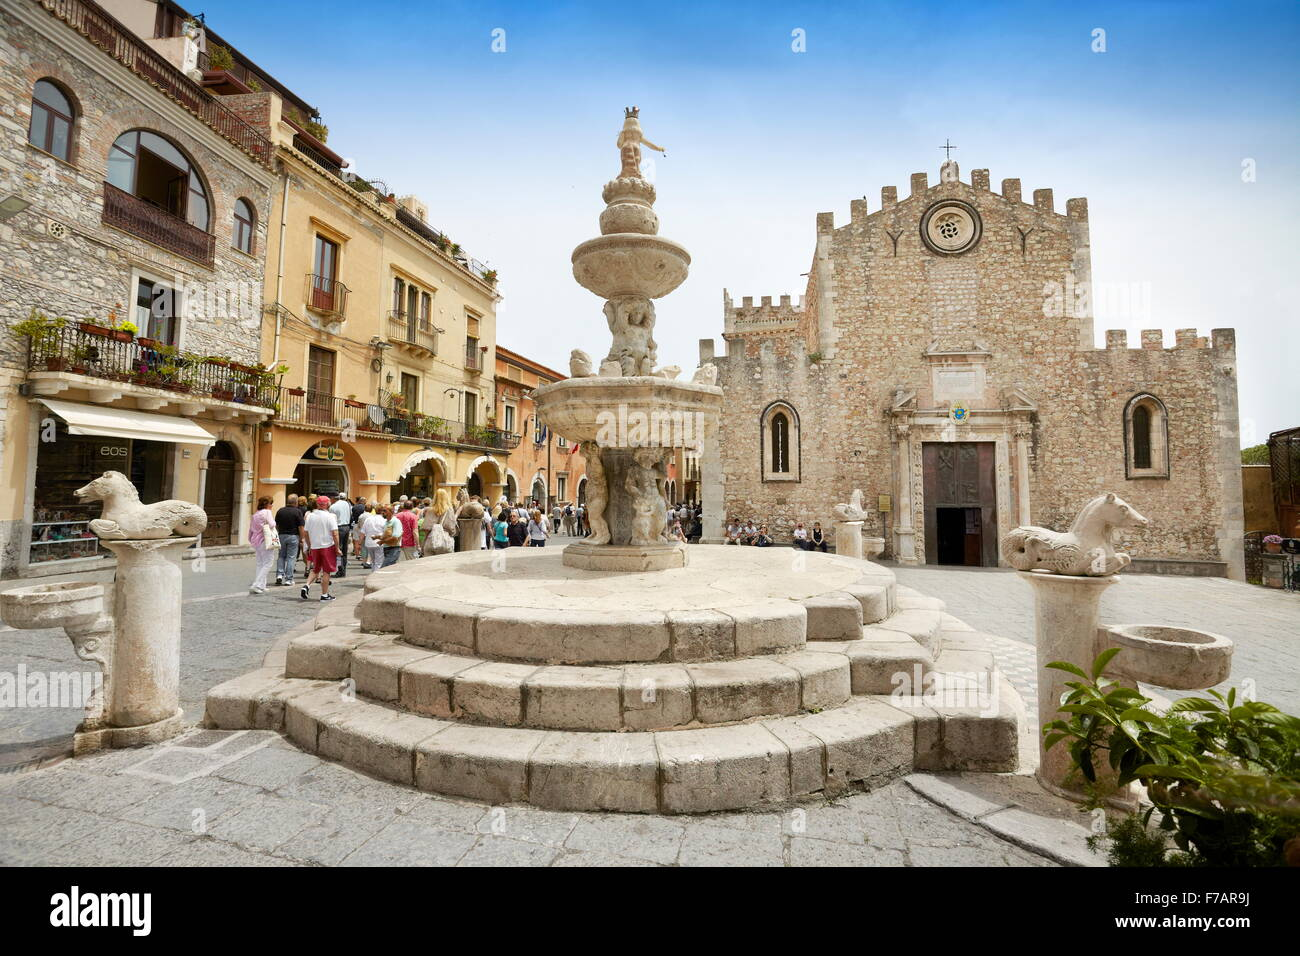 Cathedral of San Nicola and baroque fountain, Corso Umberto, Taormina old town, Sicily, Italy - Stock Image